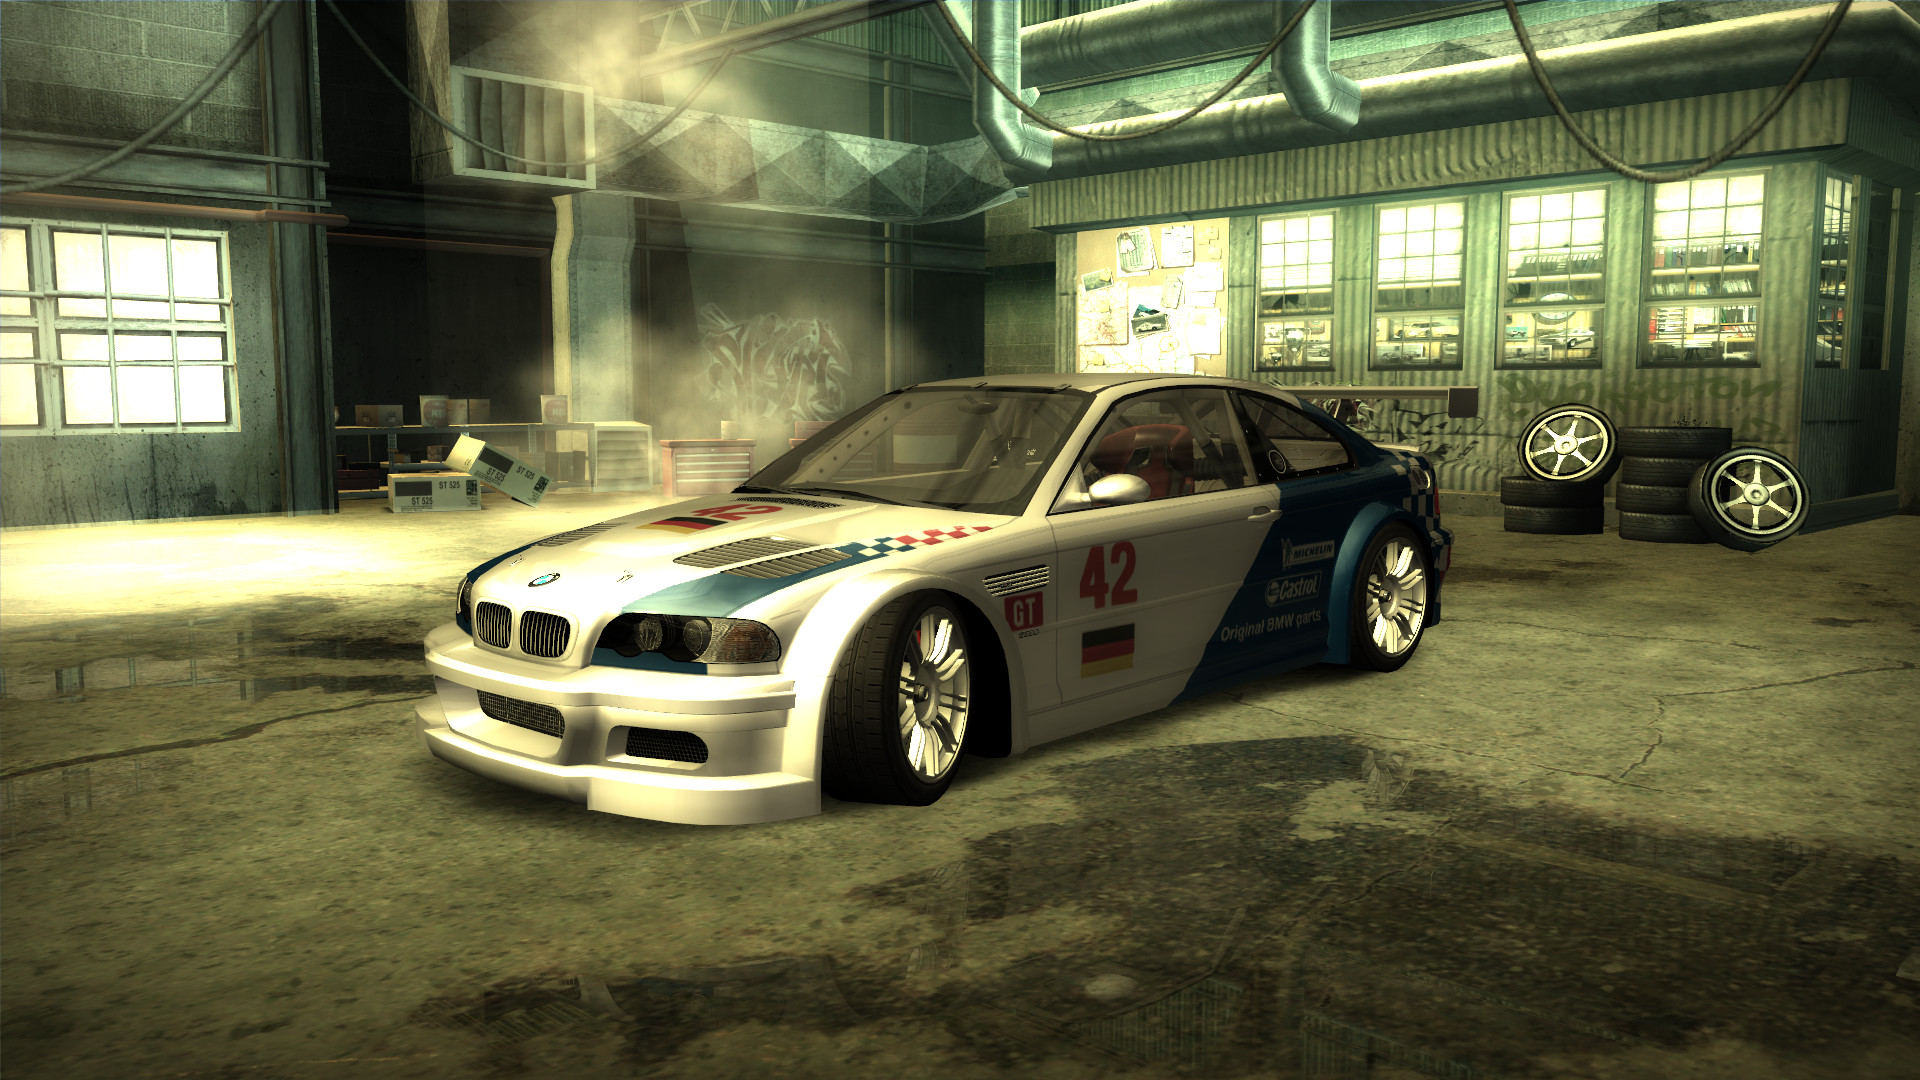 Nfsmods 42 Bmw Factory Team Livery For Bmw M3 Gtr